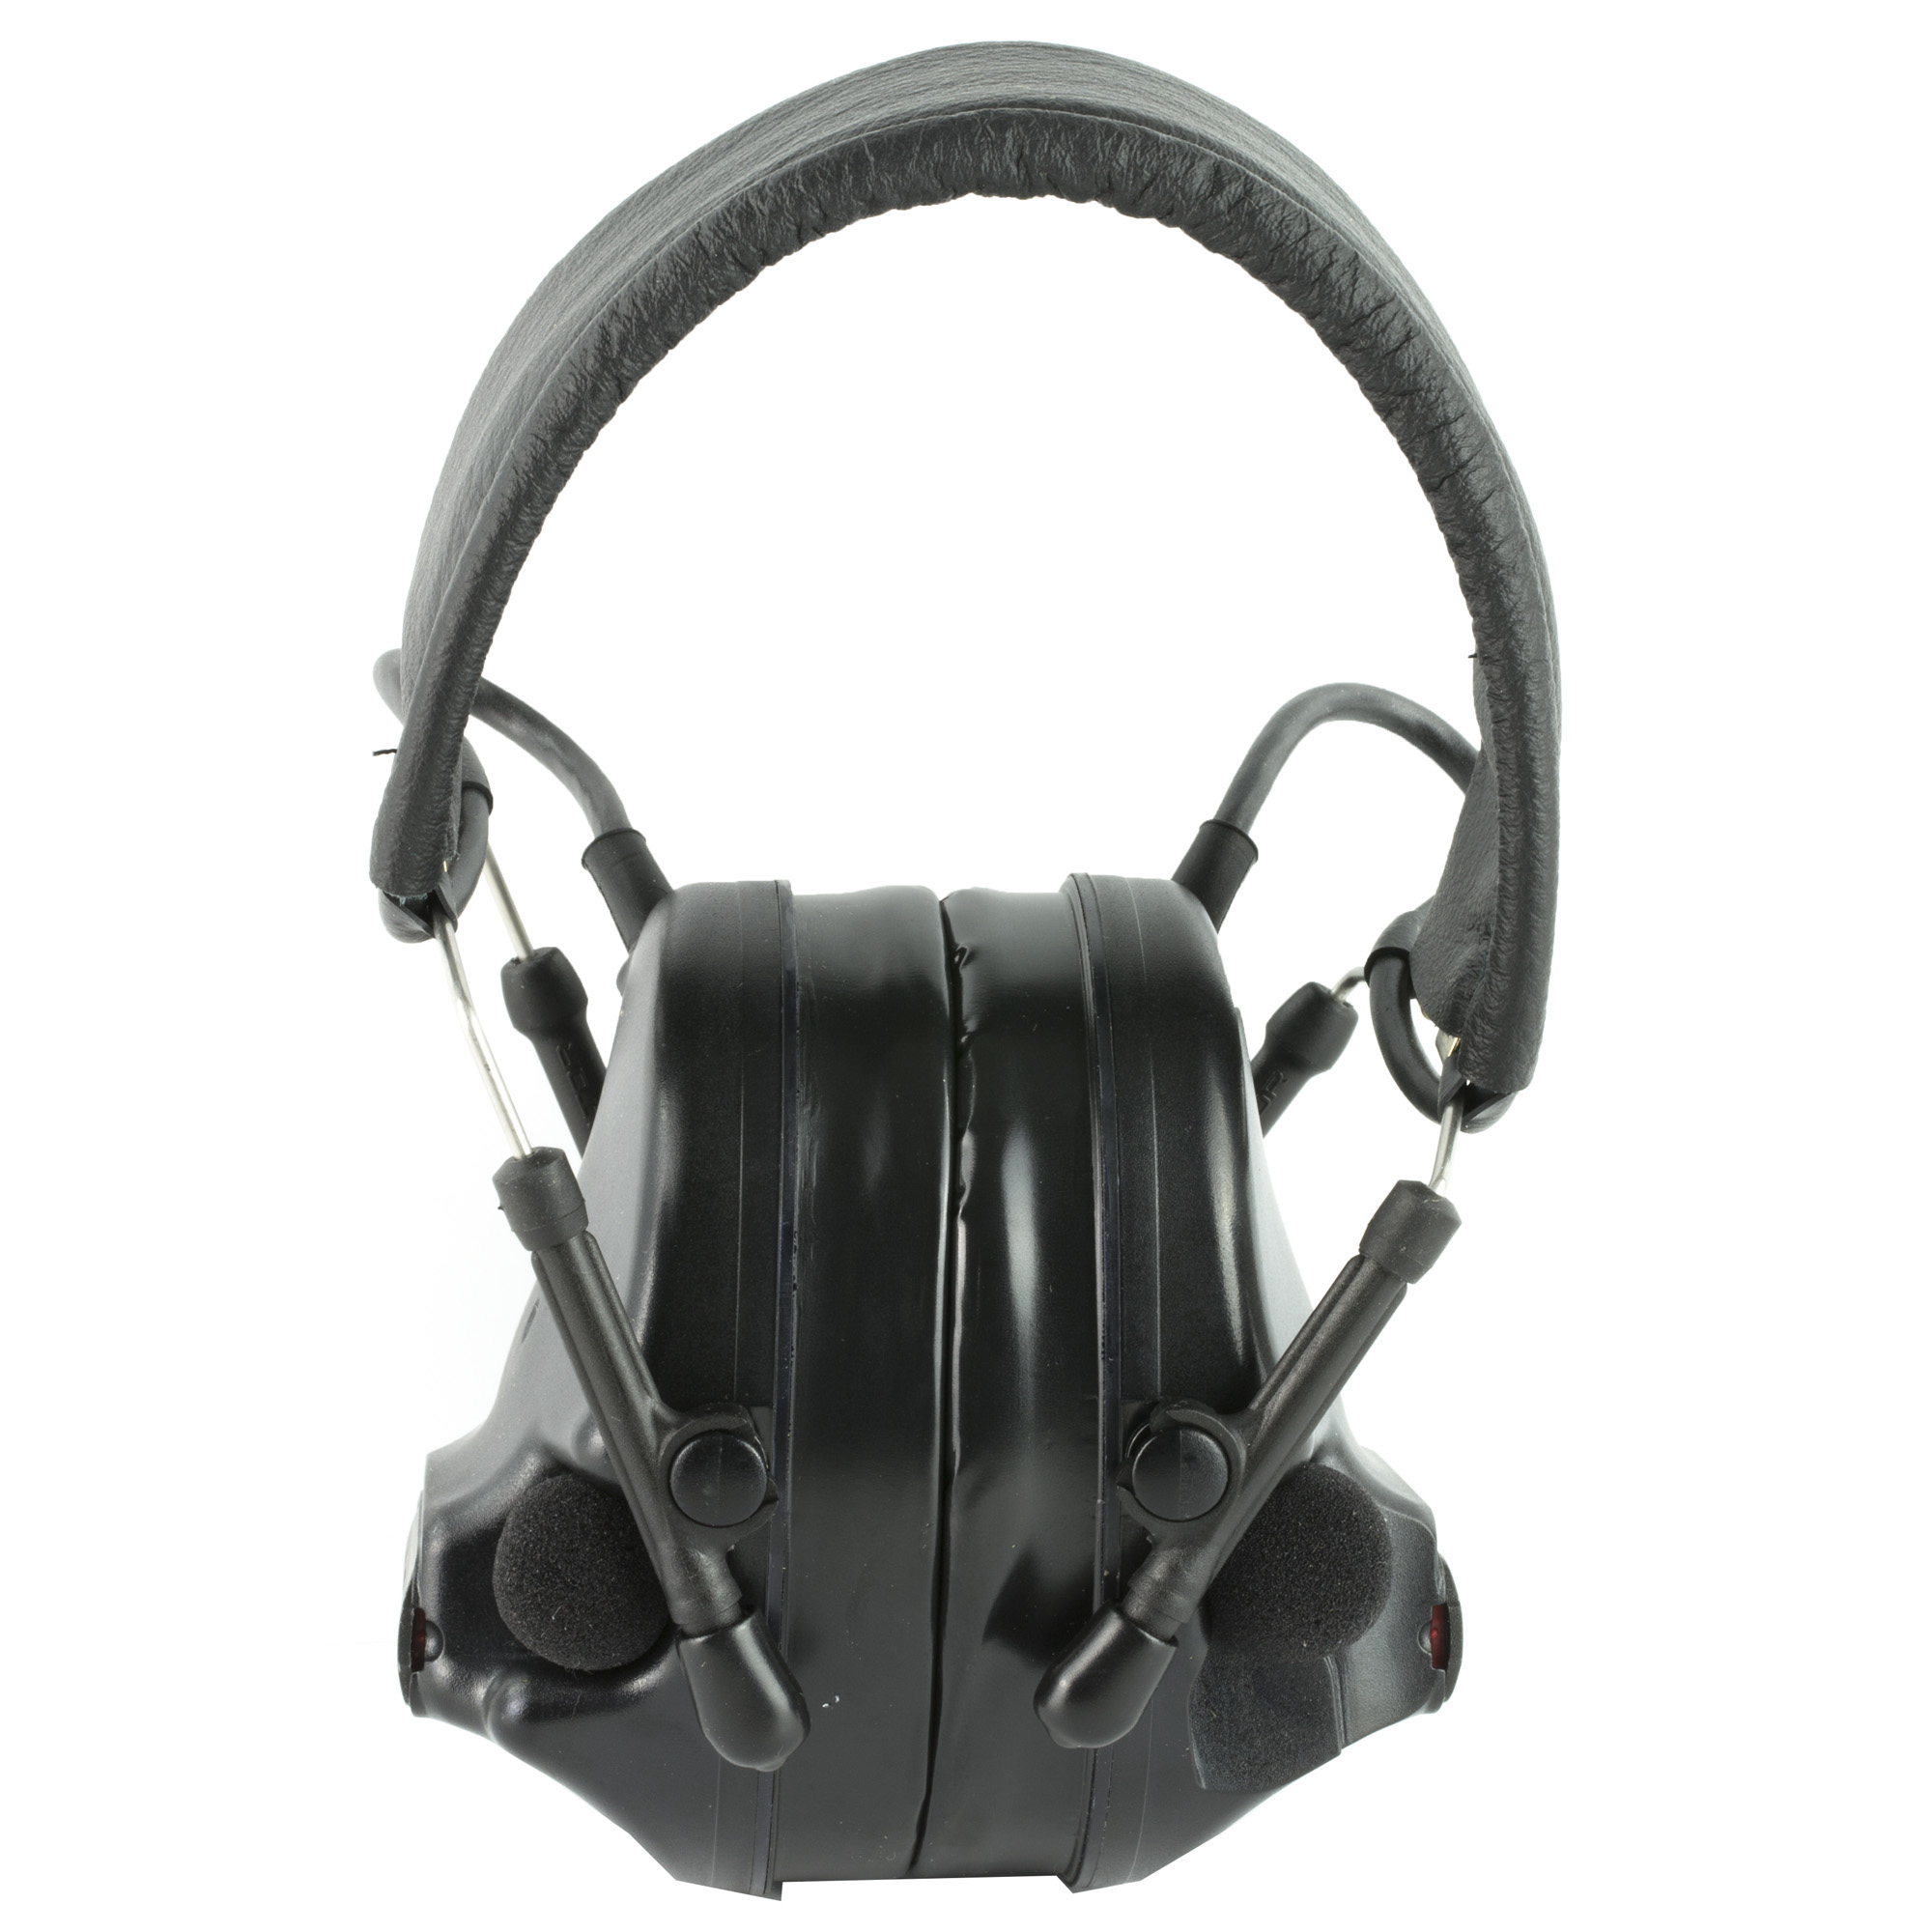 """The PELTOR COMTAC Headset is a trusted hearing protection solution that is field proven by law enforcement and militaries world wide. The ear cup profile has been improved"""" providing better fit and improved comfort for a variety of tactical helmets used by military and law enforcement professionals"""